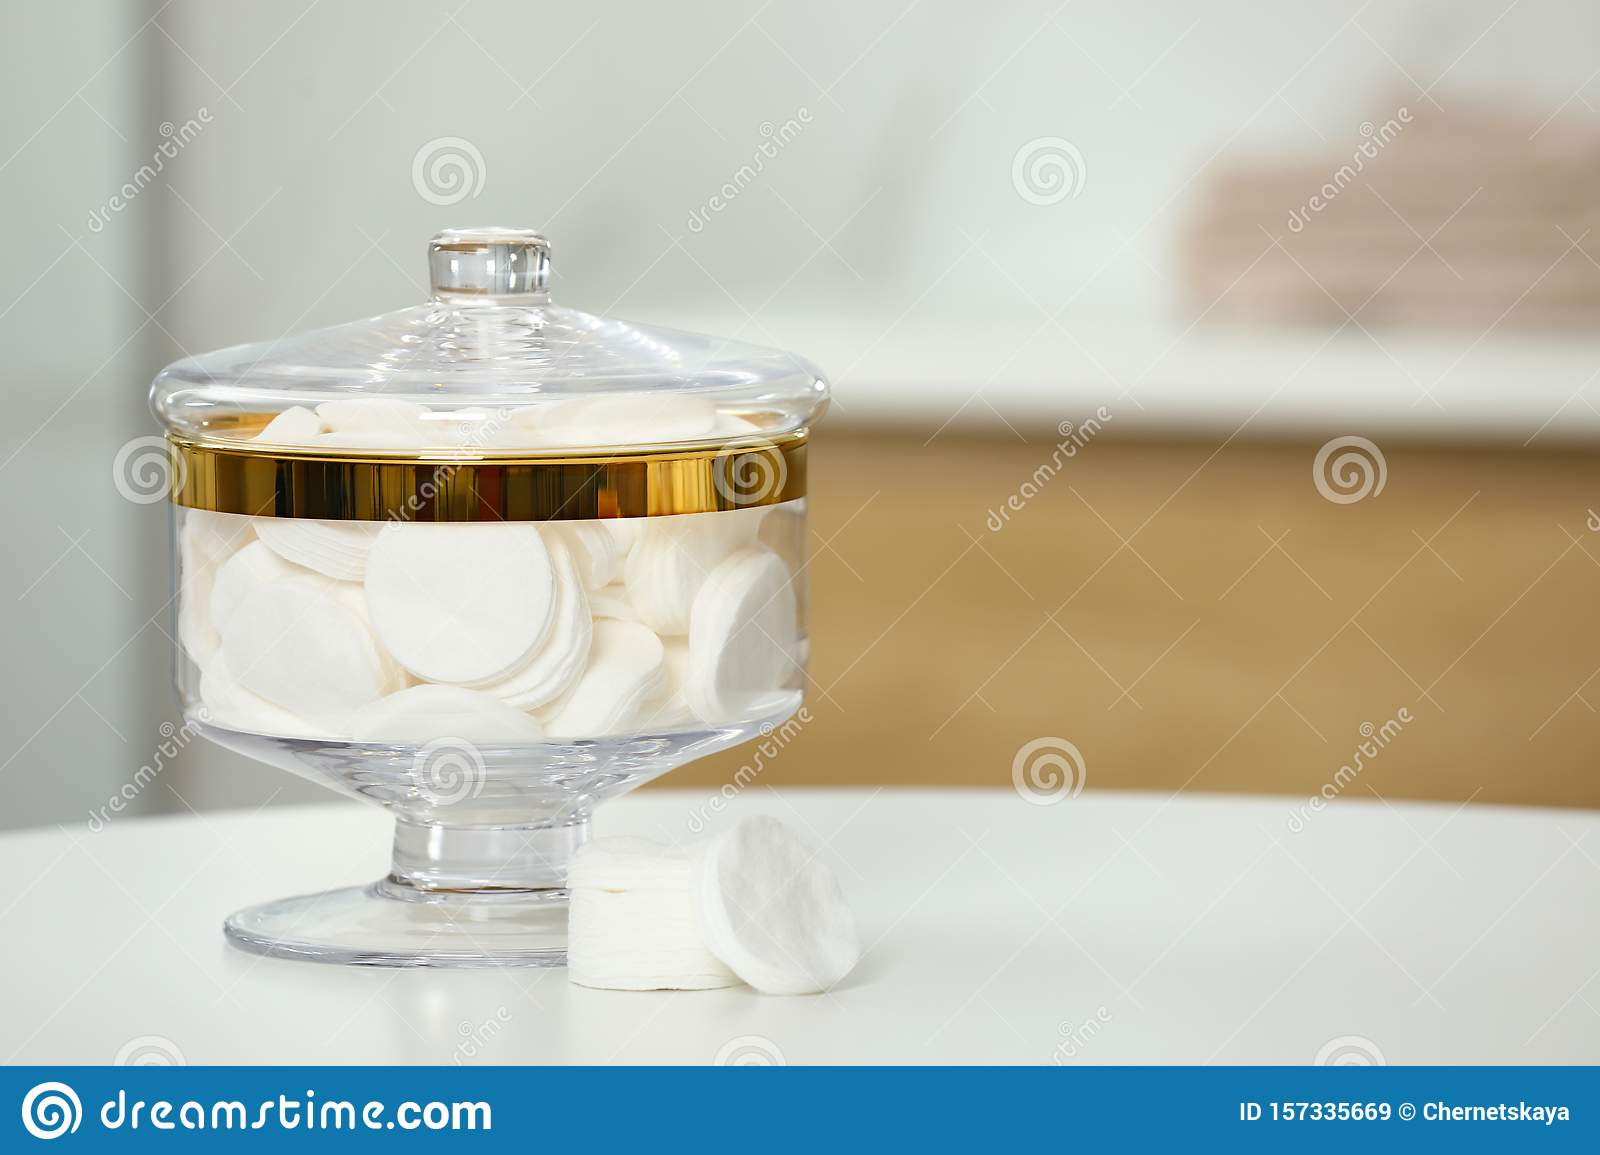 Composition of glass jar with cotton pads on table in bathroom